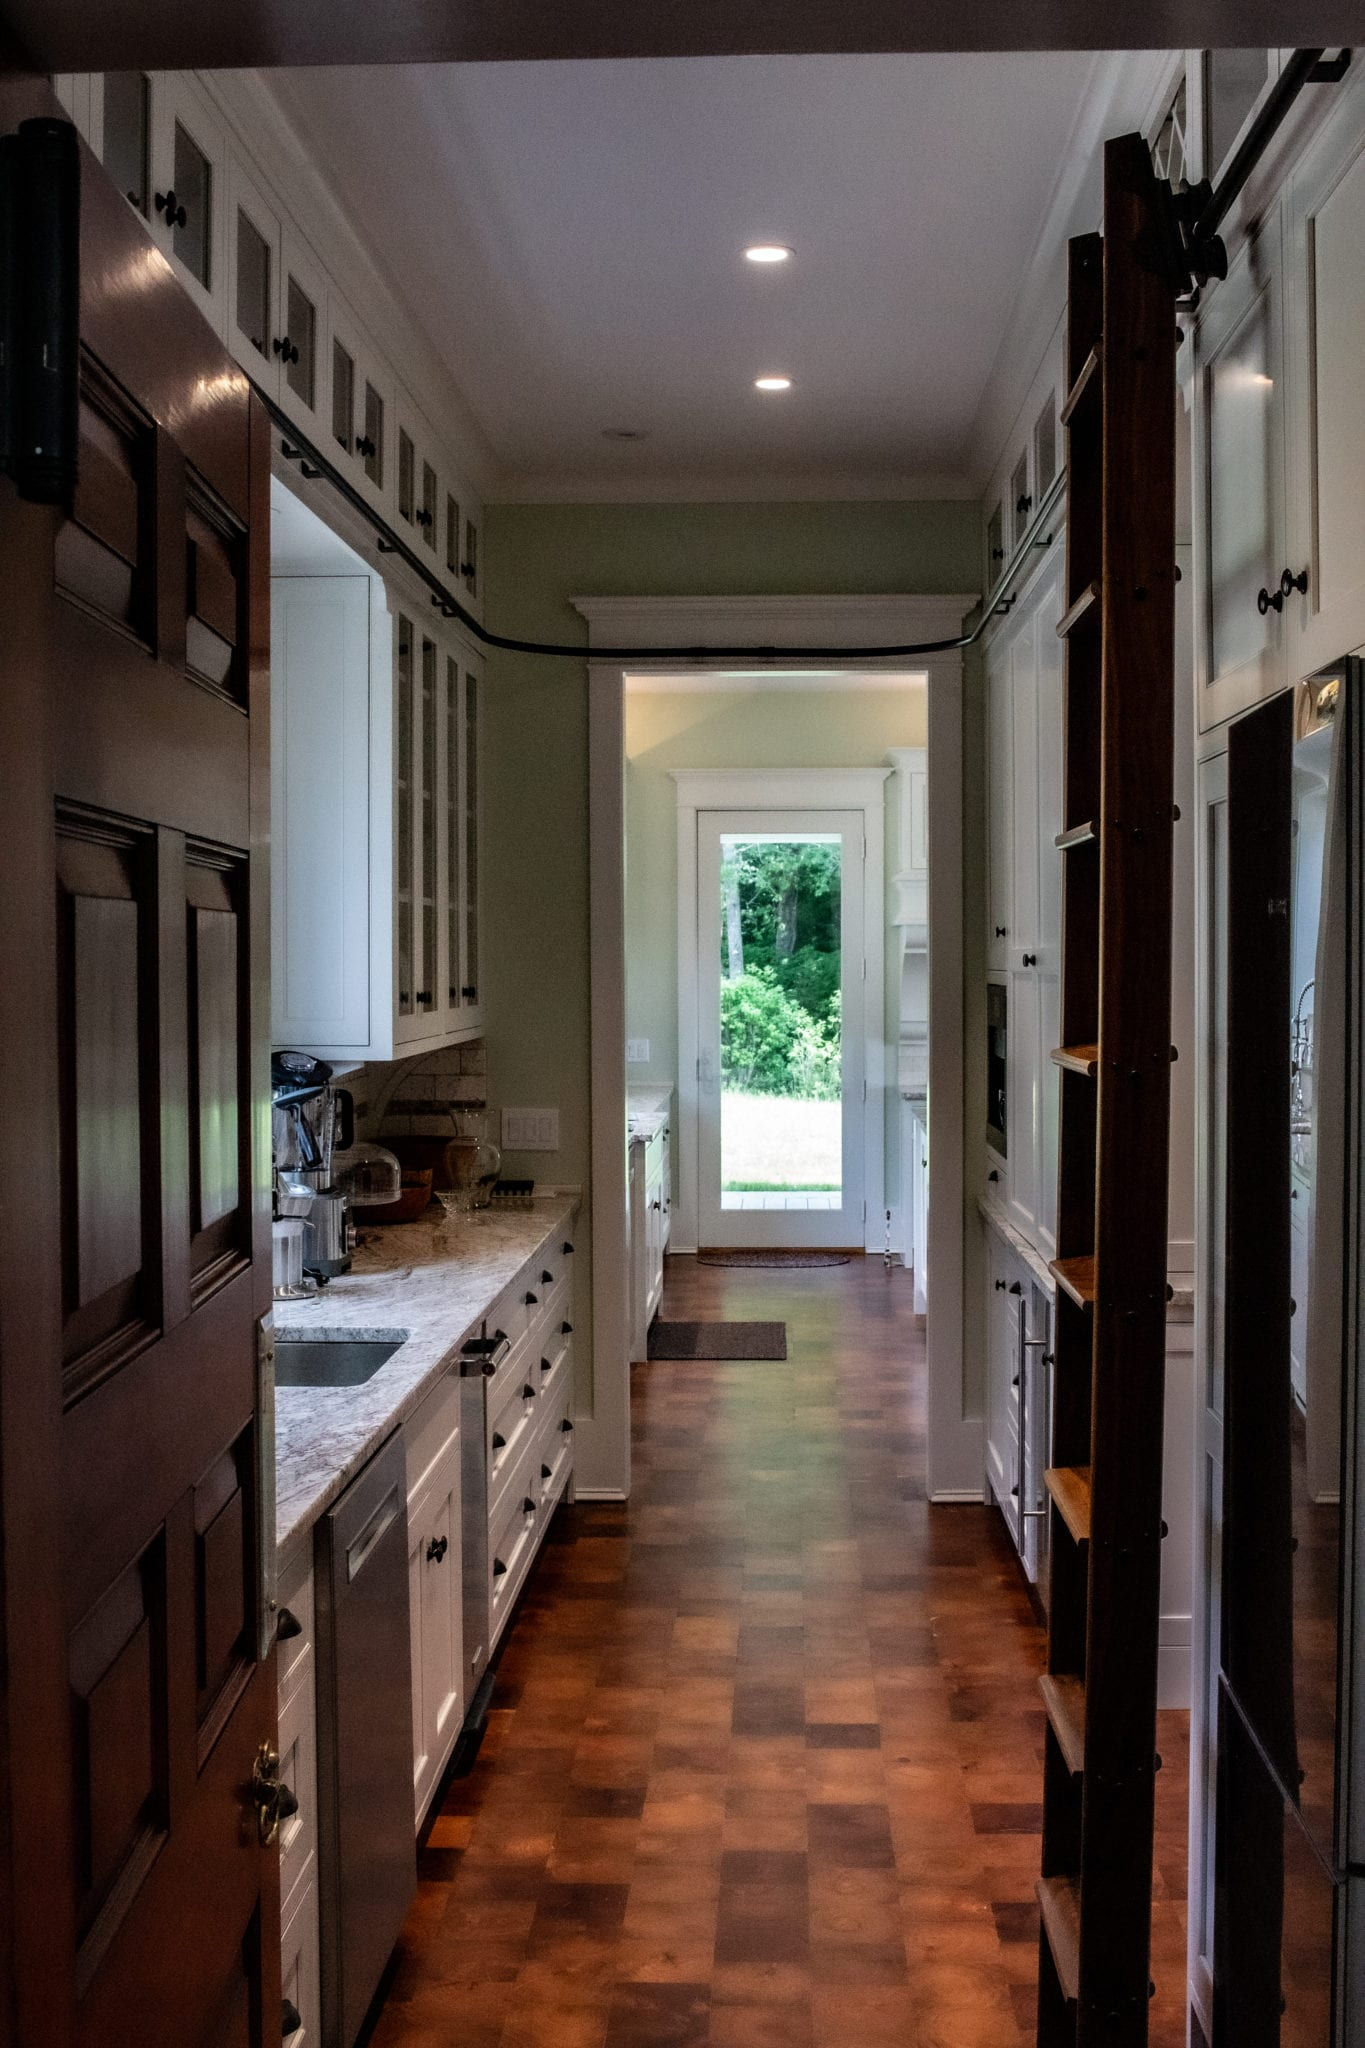 Pantry area with rolling ladder